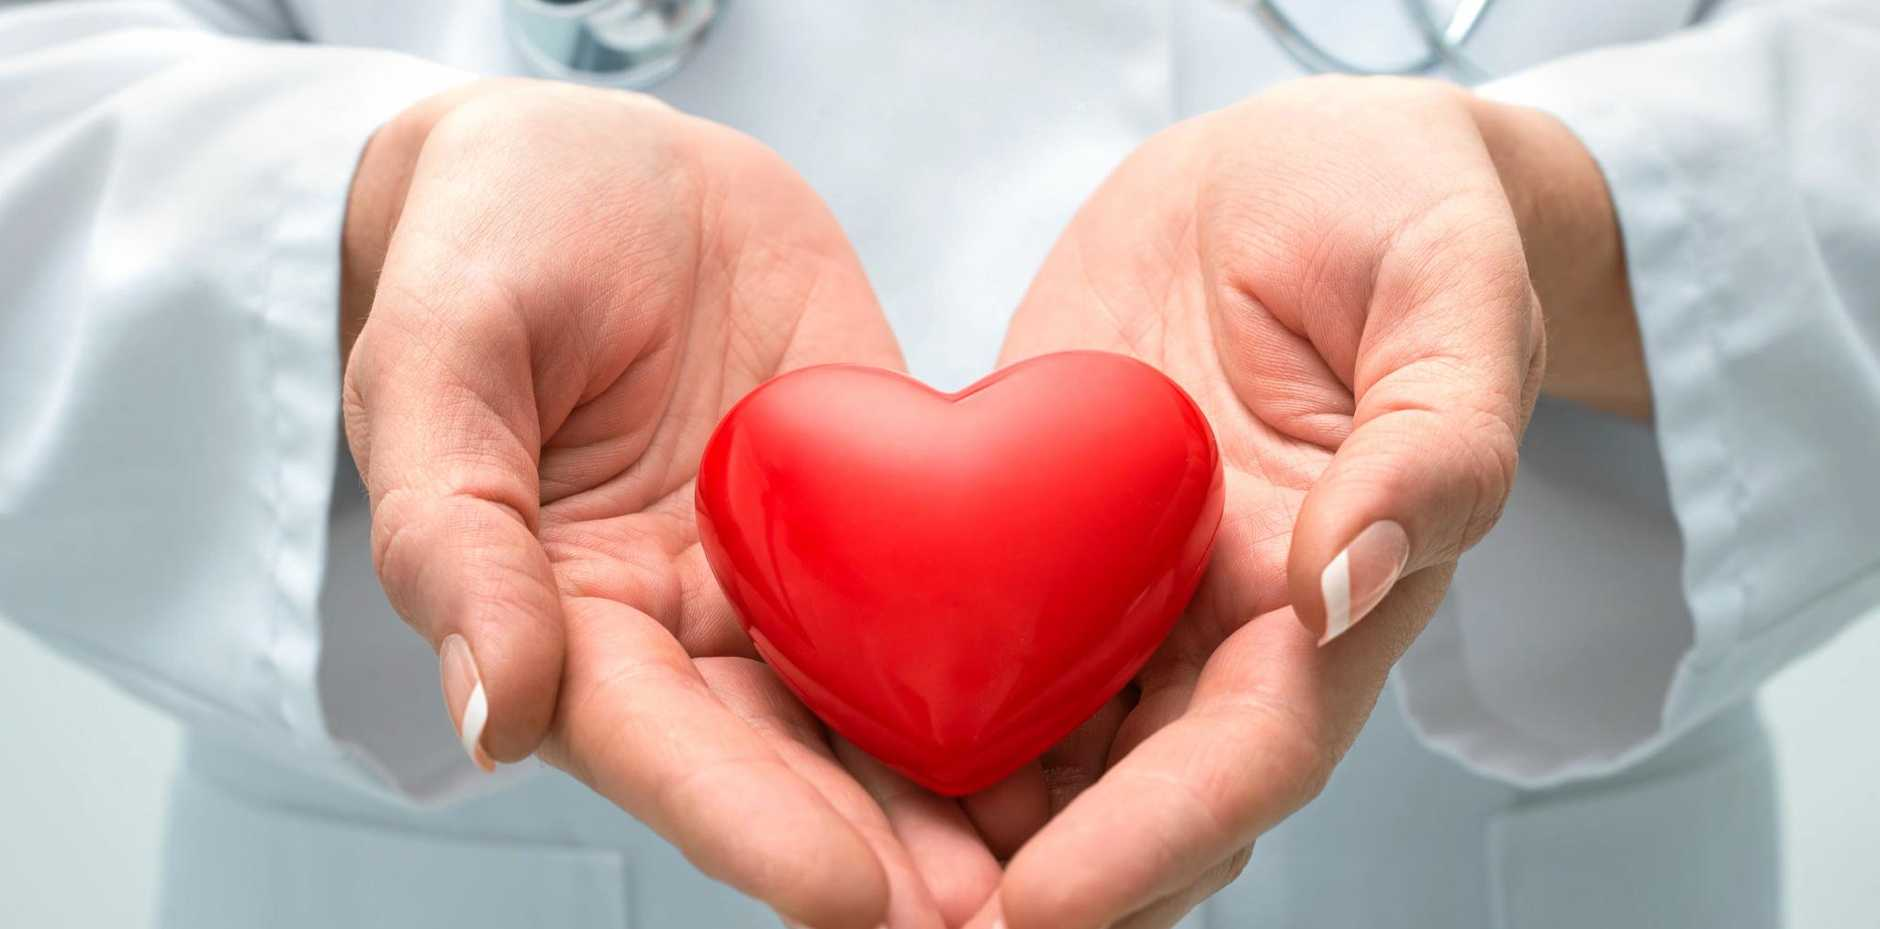 DONATE LIFE: Join the Australian Organ Donor Register online and you could help save a life.